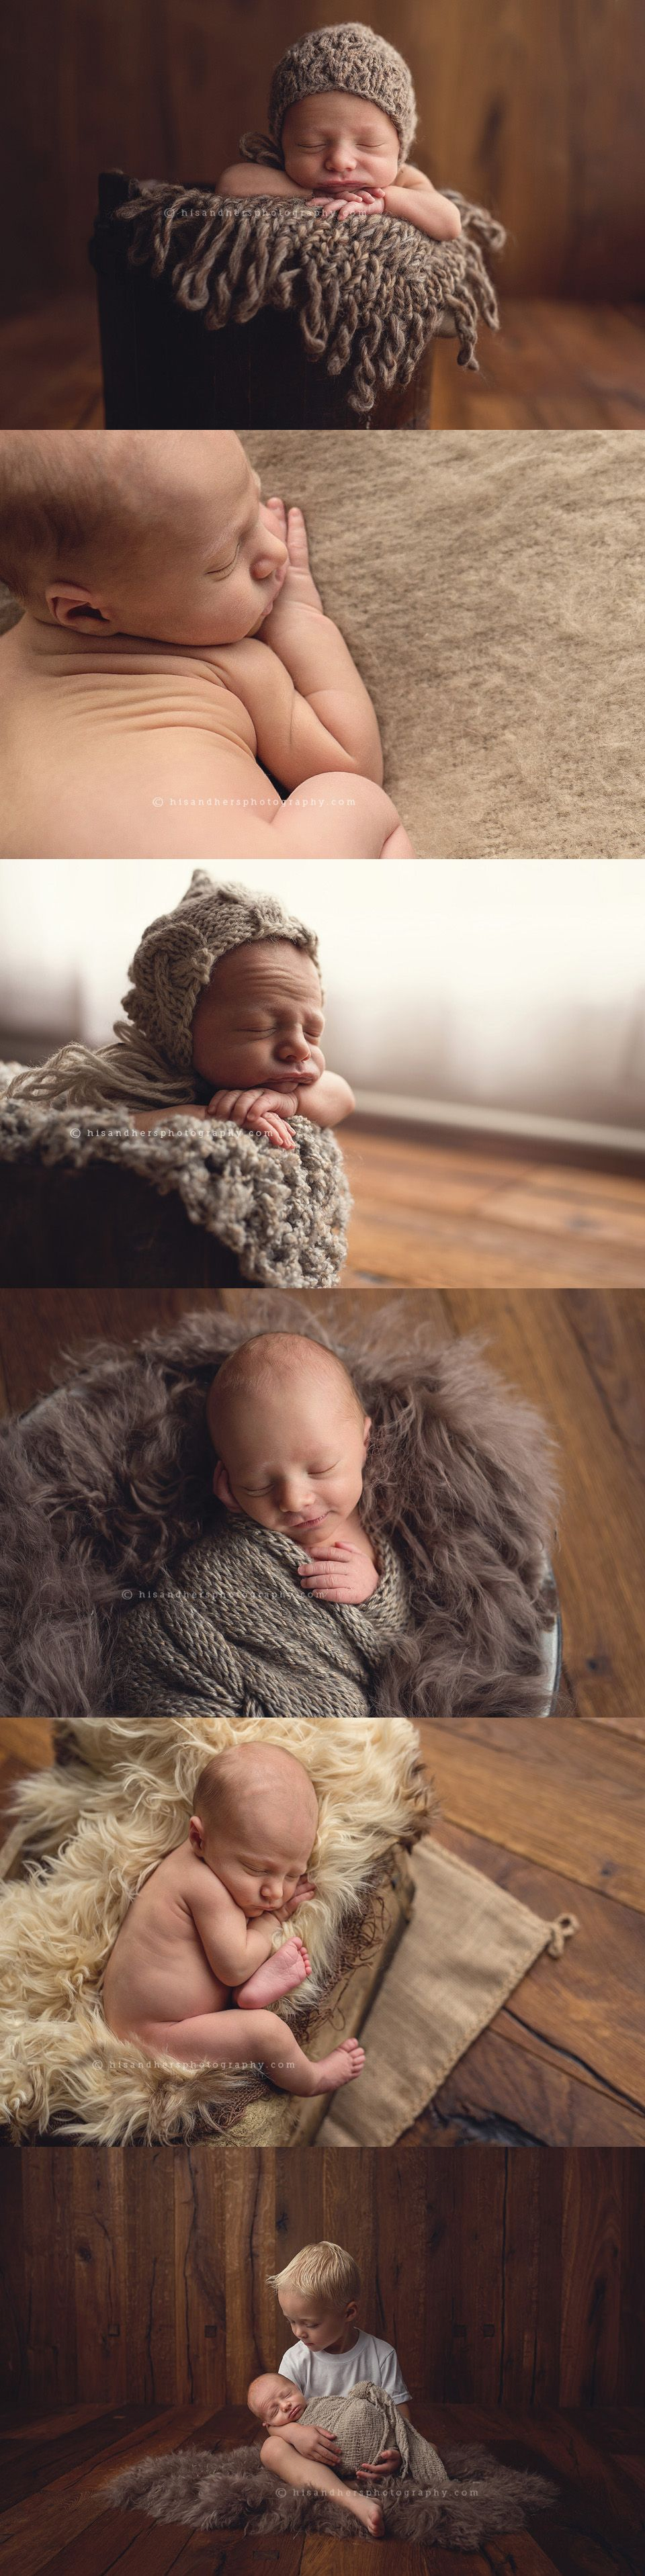 newborn photographer des moines iowa baby pictures photography studio